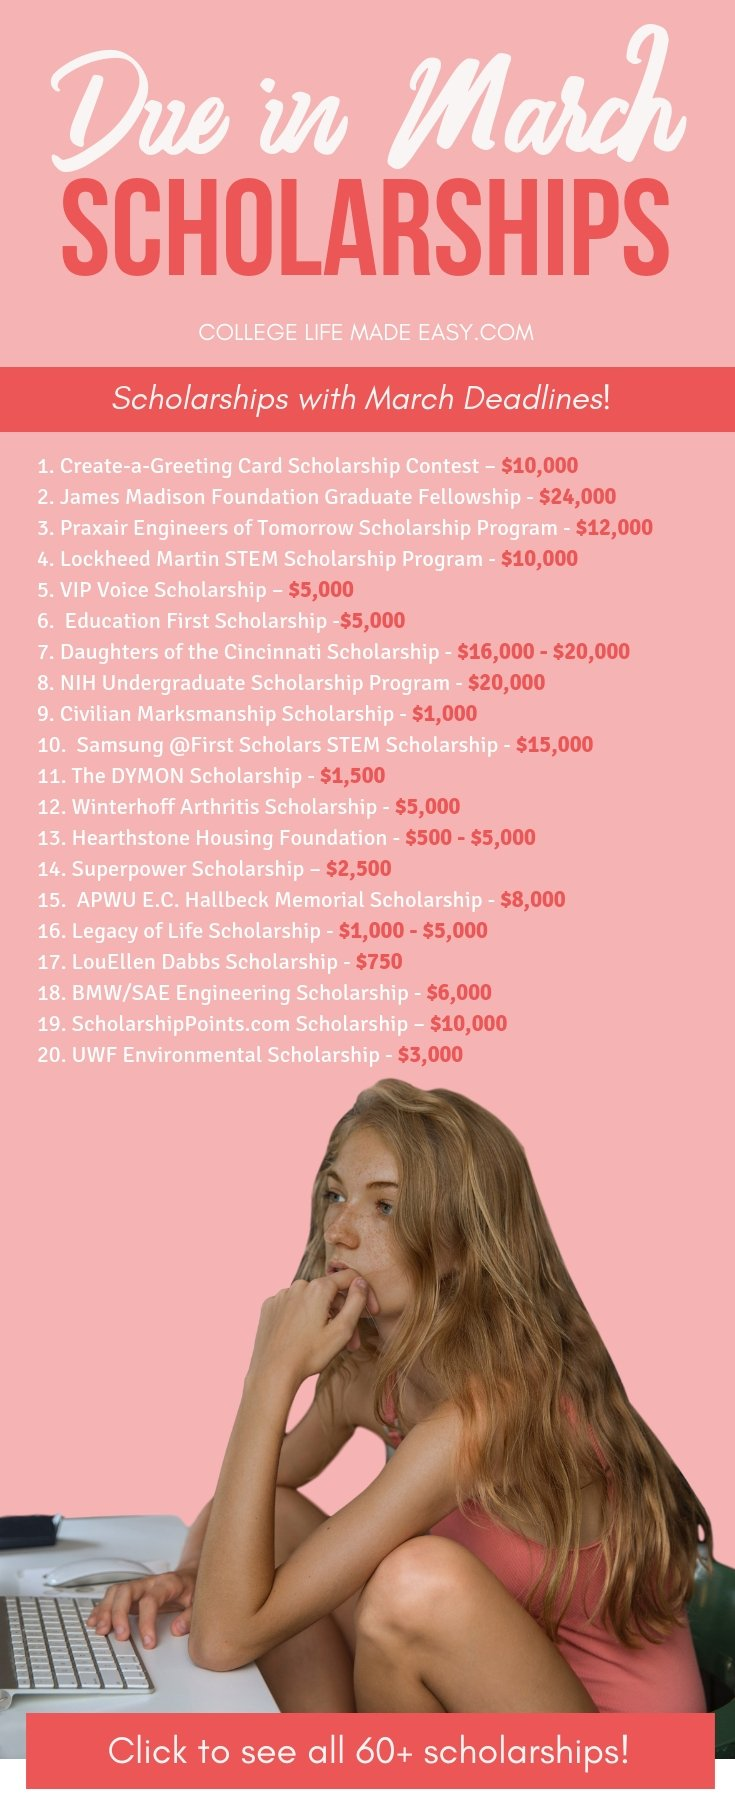 60+ college scholarships that are due in March this year. Don't let these deadlines pass you by! Check out the entire list to start applying right away, only the most current scholarships are available at CollegeLifeMadeEasy.com. #college #collegelife #scholarship #scholarships #highschool #gradschool #undergrad #seniors #juniors #highschoolstudents #award #women